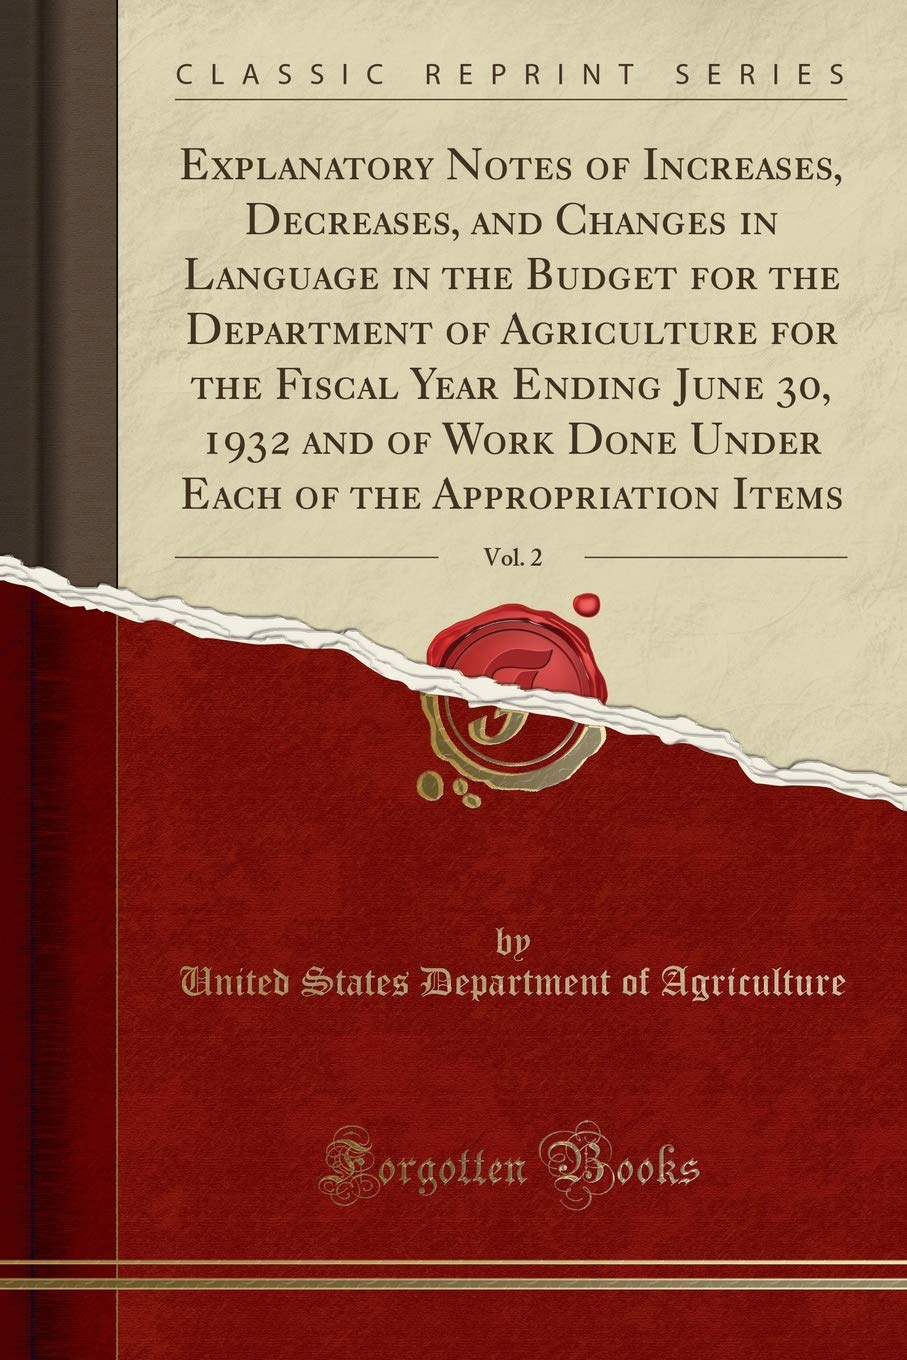 Explanatory Notes of Increases, Decreases, and Changes in Language in the Budget for the Department of Agriculture for the Fiscal Year Ending June 30, ... Appropriation Items, Vol. 2 (Classic Reprint)